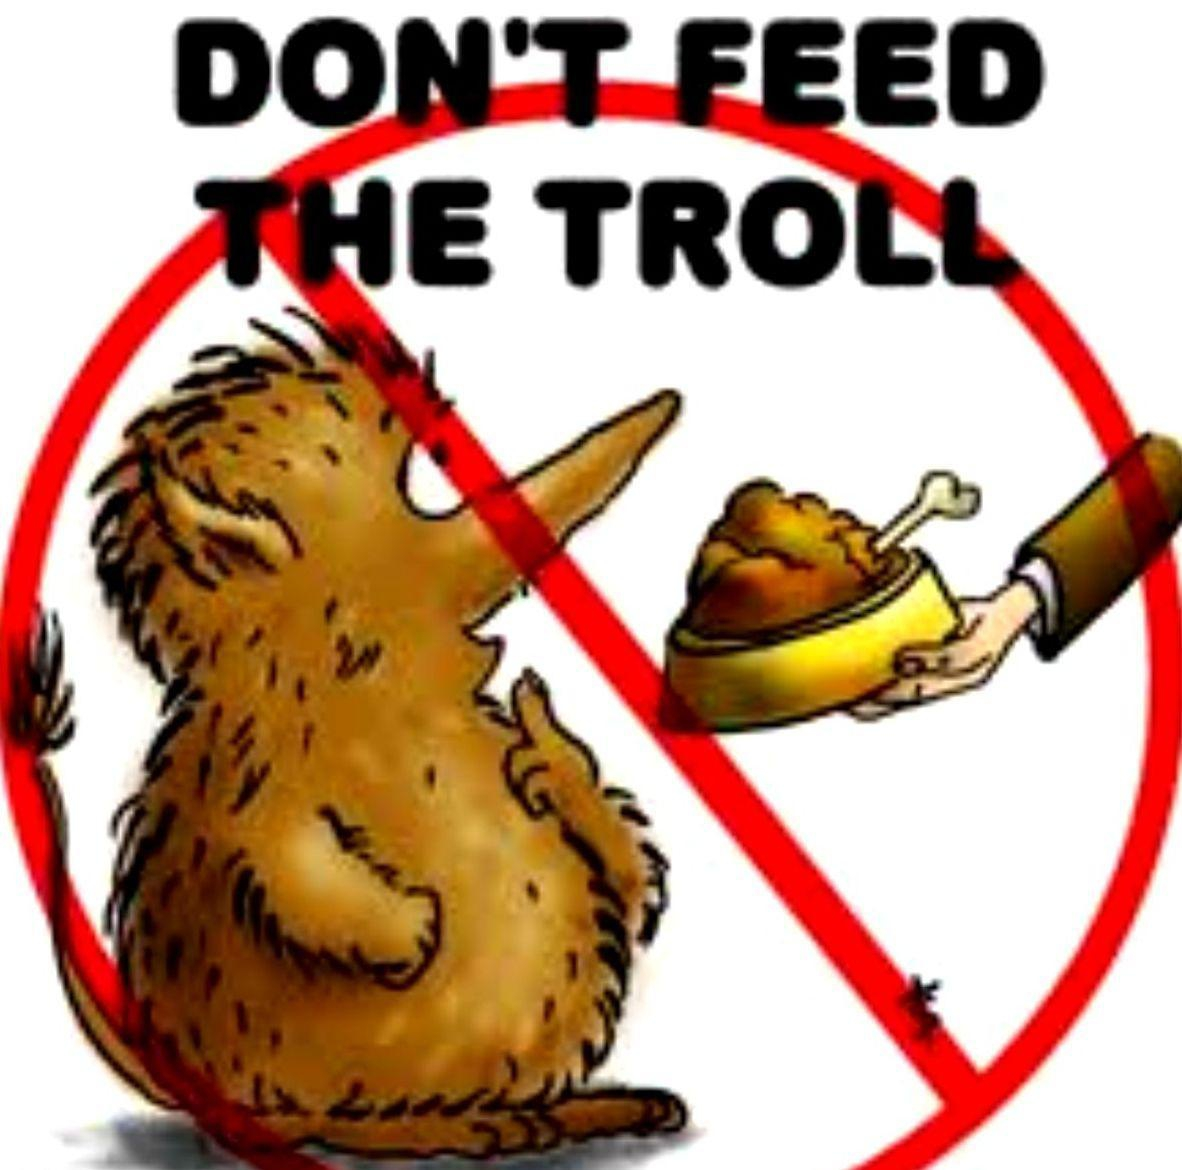 an analysis of the topic of the trolls thigh and the issues of fighting a troll Food products series: vegetables,fruits and aqutic products in chinaour products are produced under iso9002 and haccp standard.